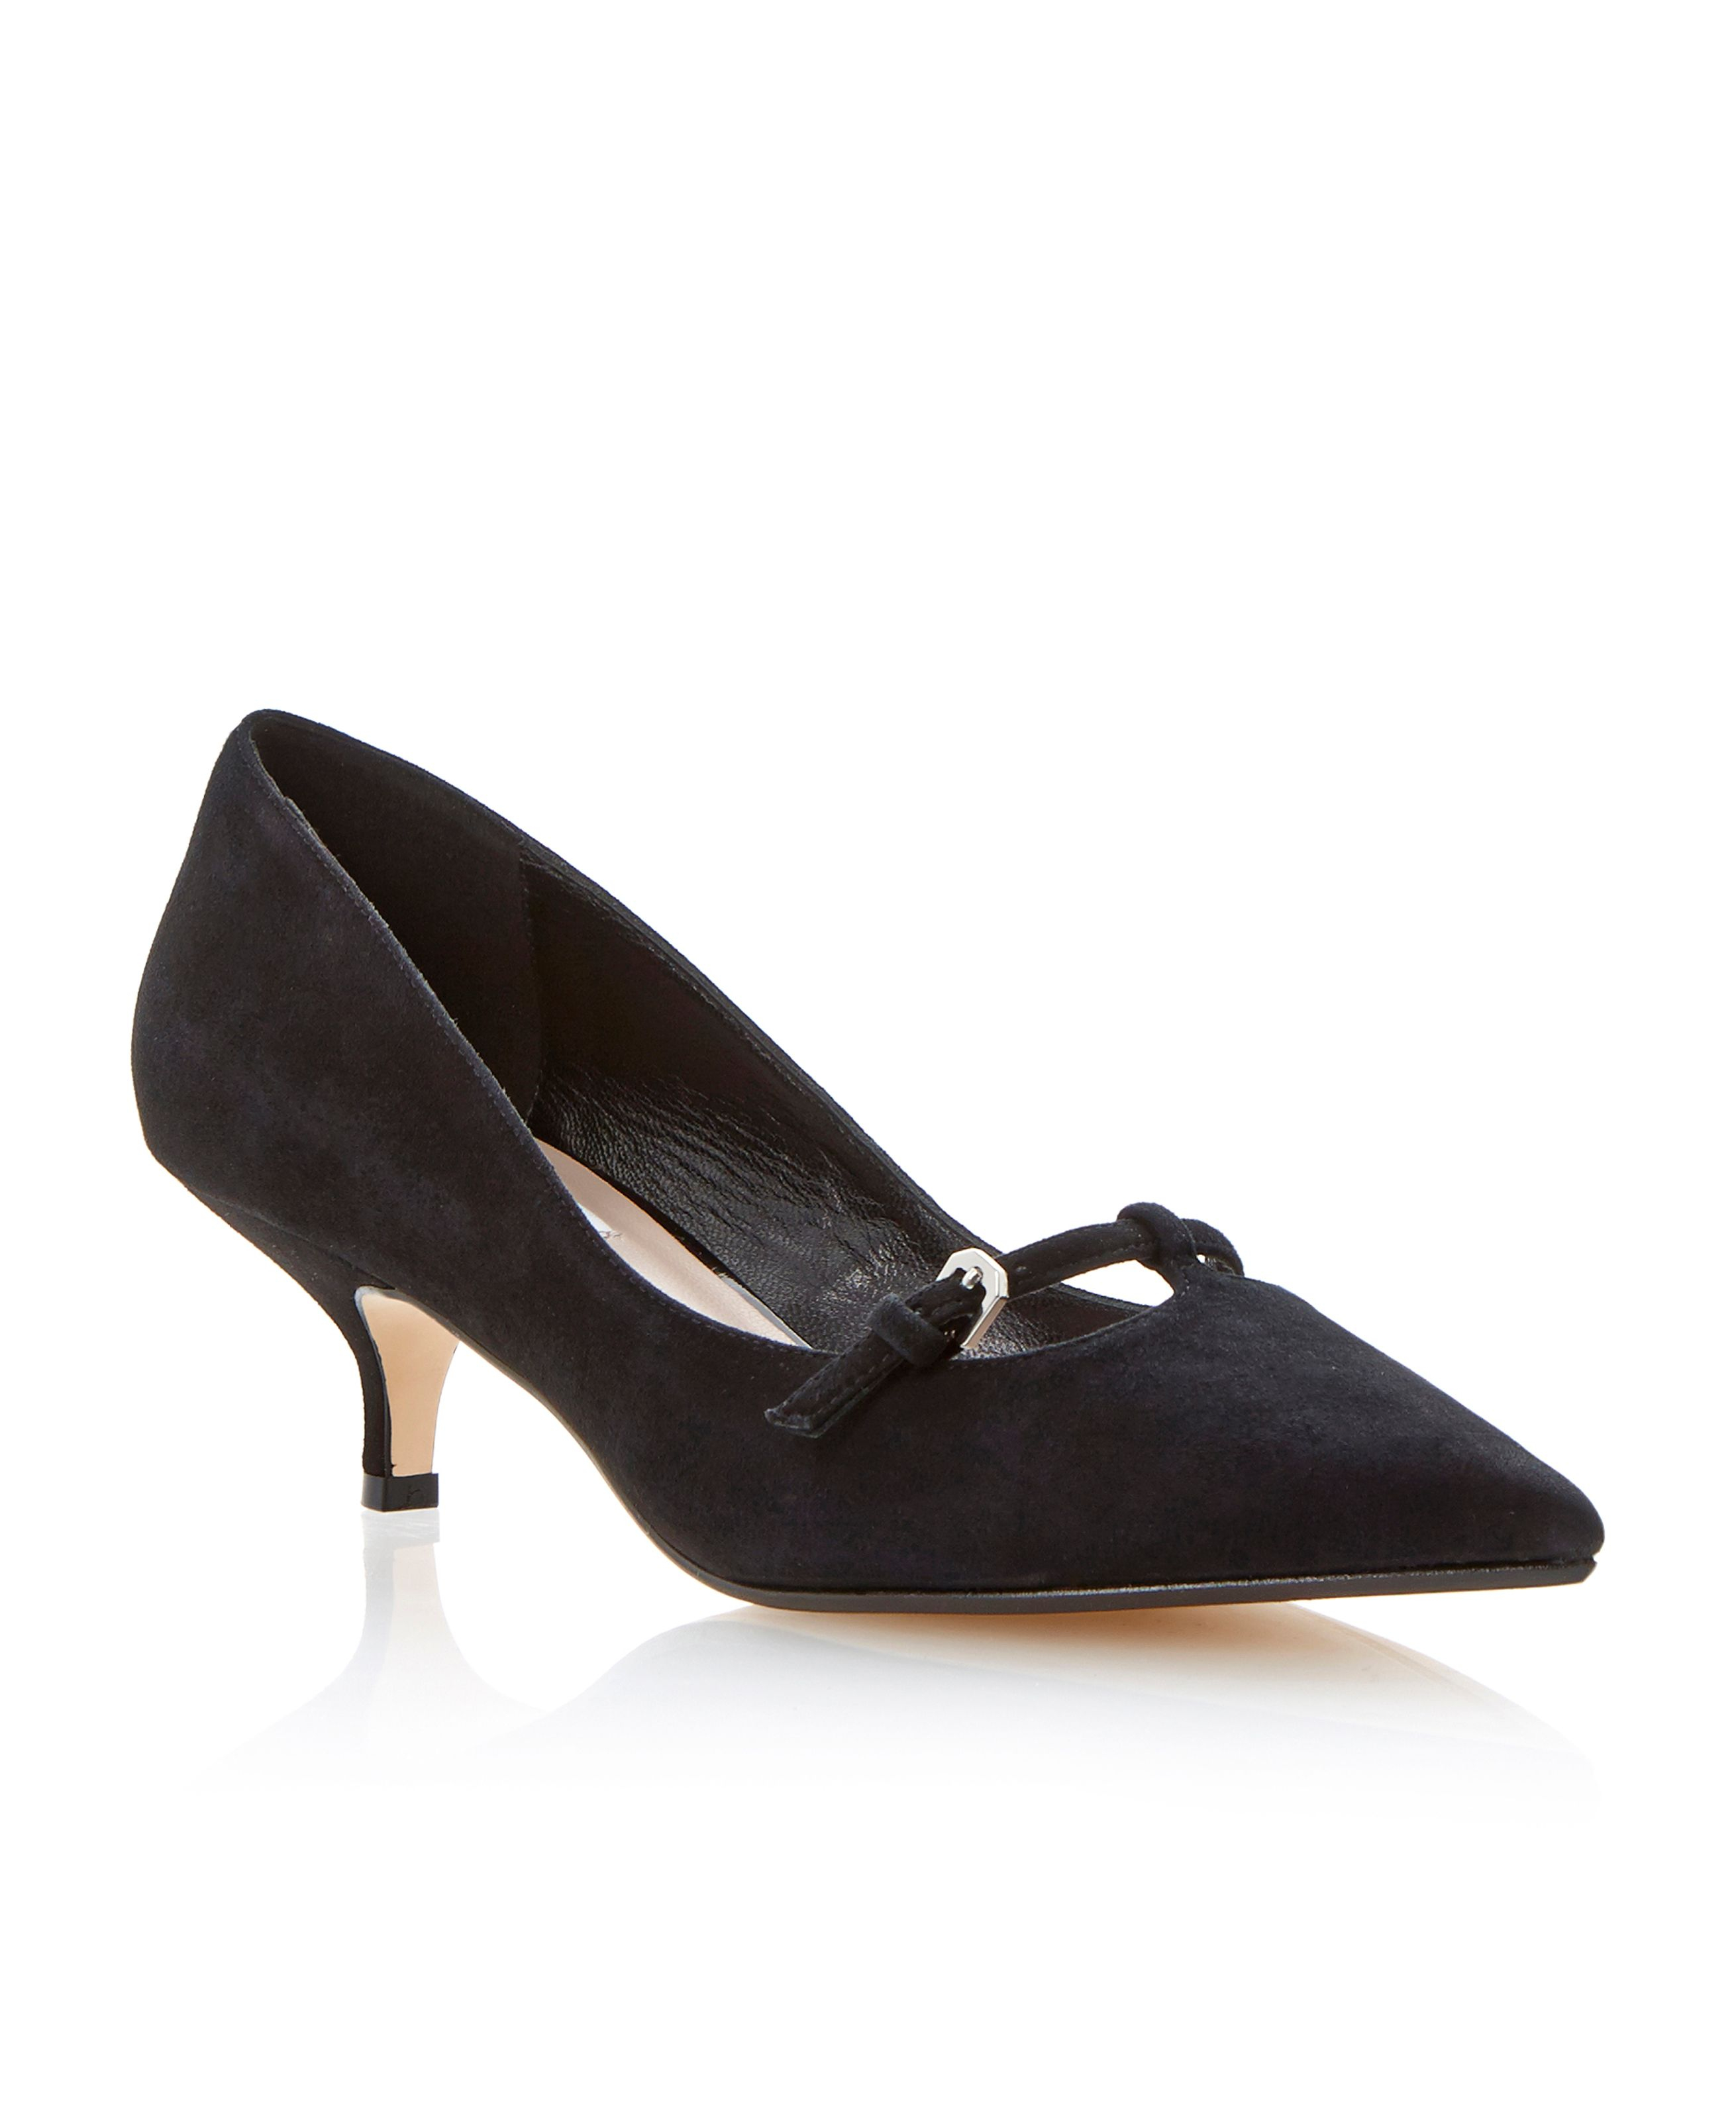 dune alyce suede pointed toe kitten heel shoes in black lyst rtonzqc